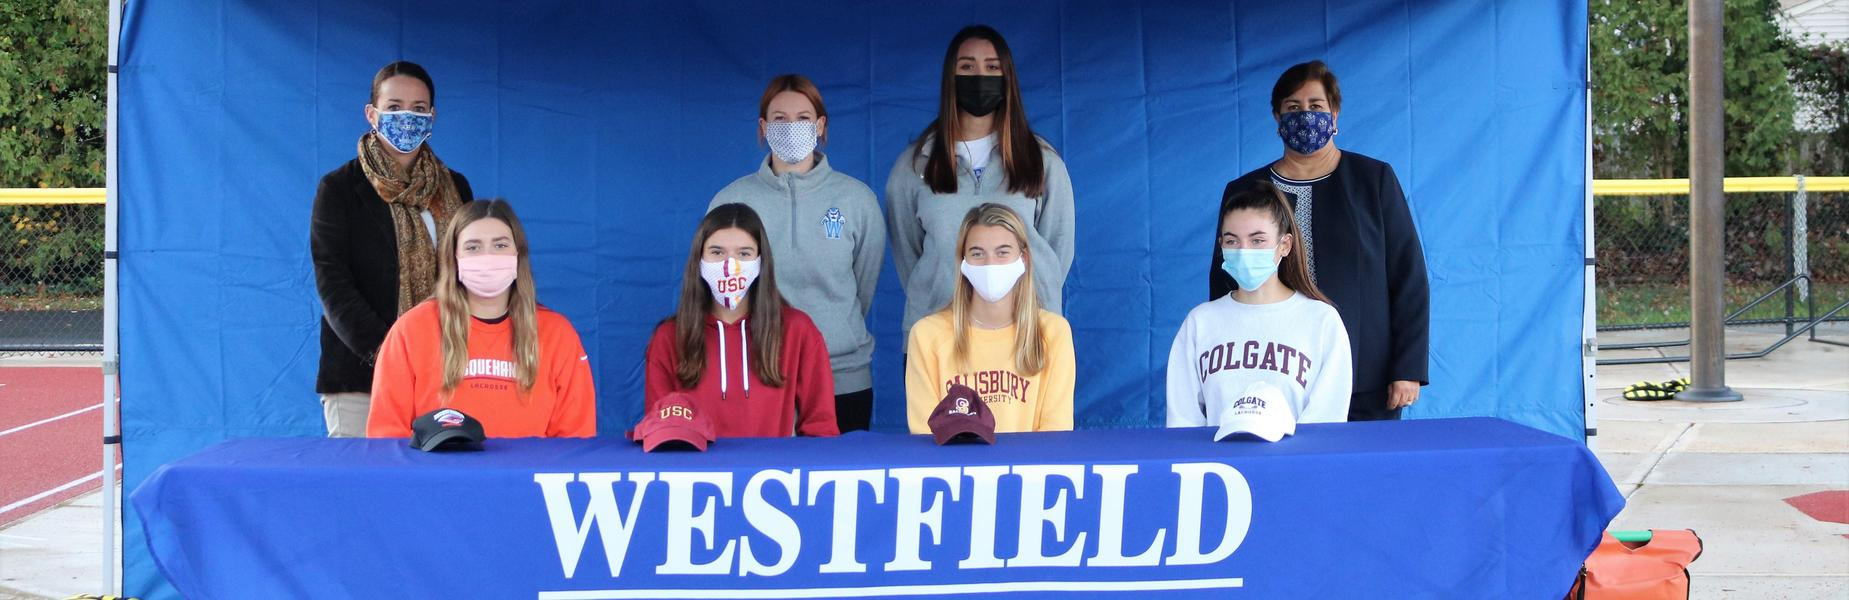 FR/LR:  WHS seniors Chloe Pappalardo, Mia Fleming, Brooke Scheuermann, and LJ Kehler signed National Letters of Intent to play lacrosse at colleges/universities next fall.   BR/LR:  WHS Principal Mary Asfendis, Coaches Katie DaSilva and Abigail Cohn, Supervisor of Athletics Sandra Mamary